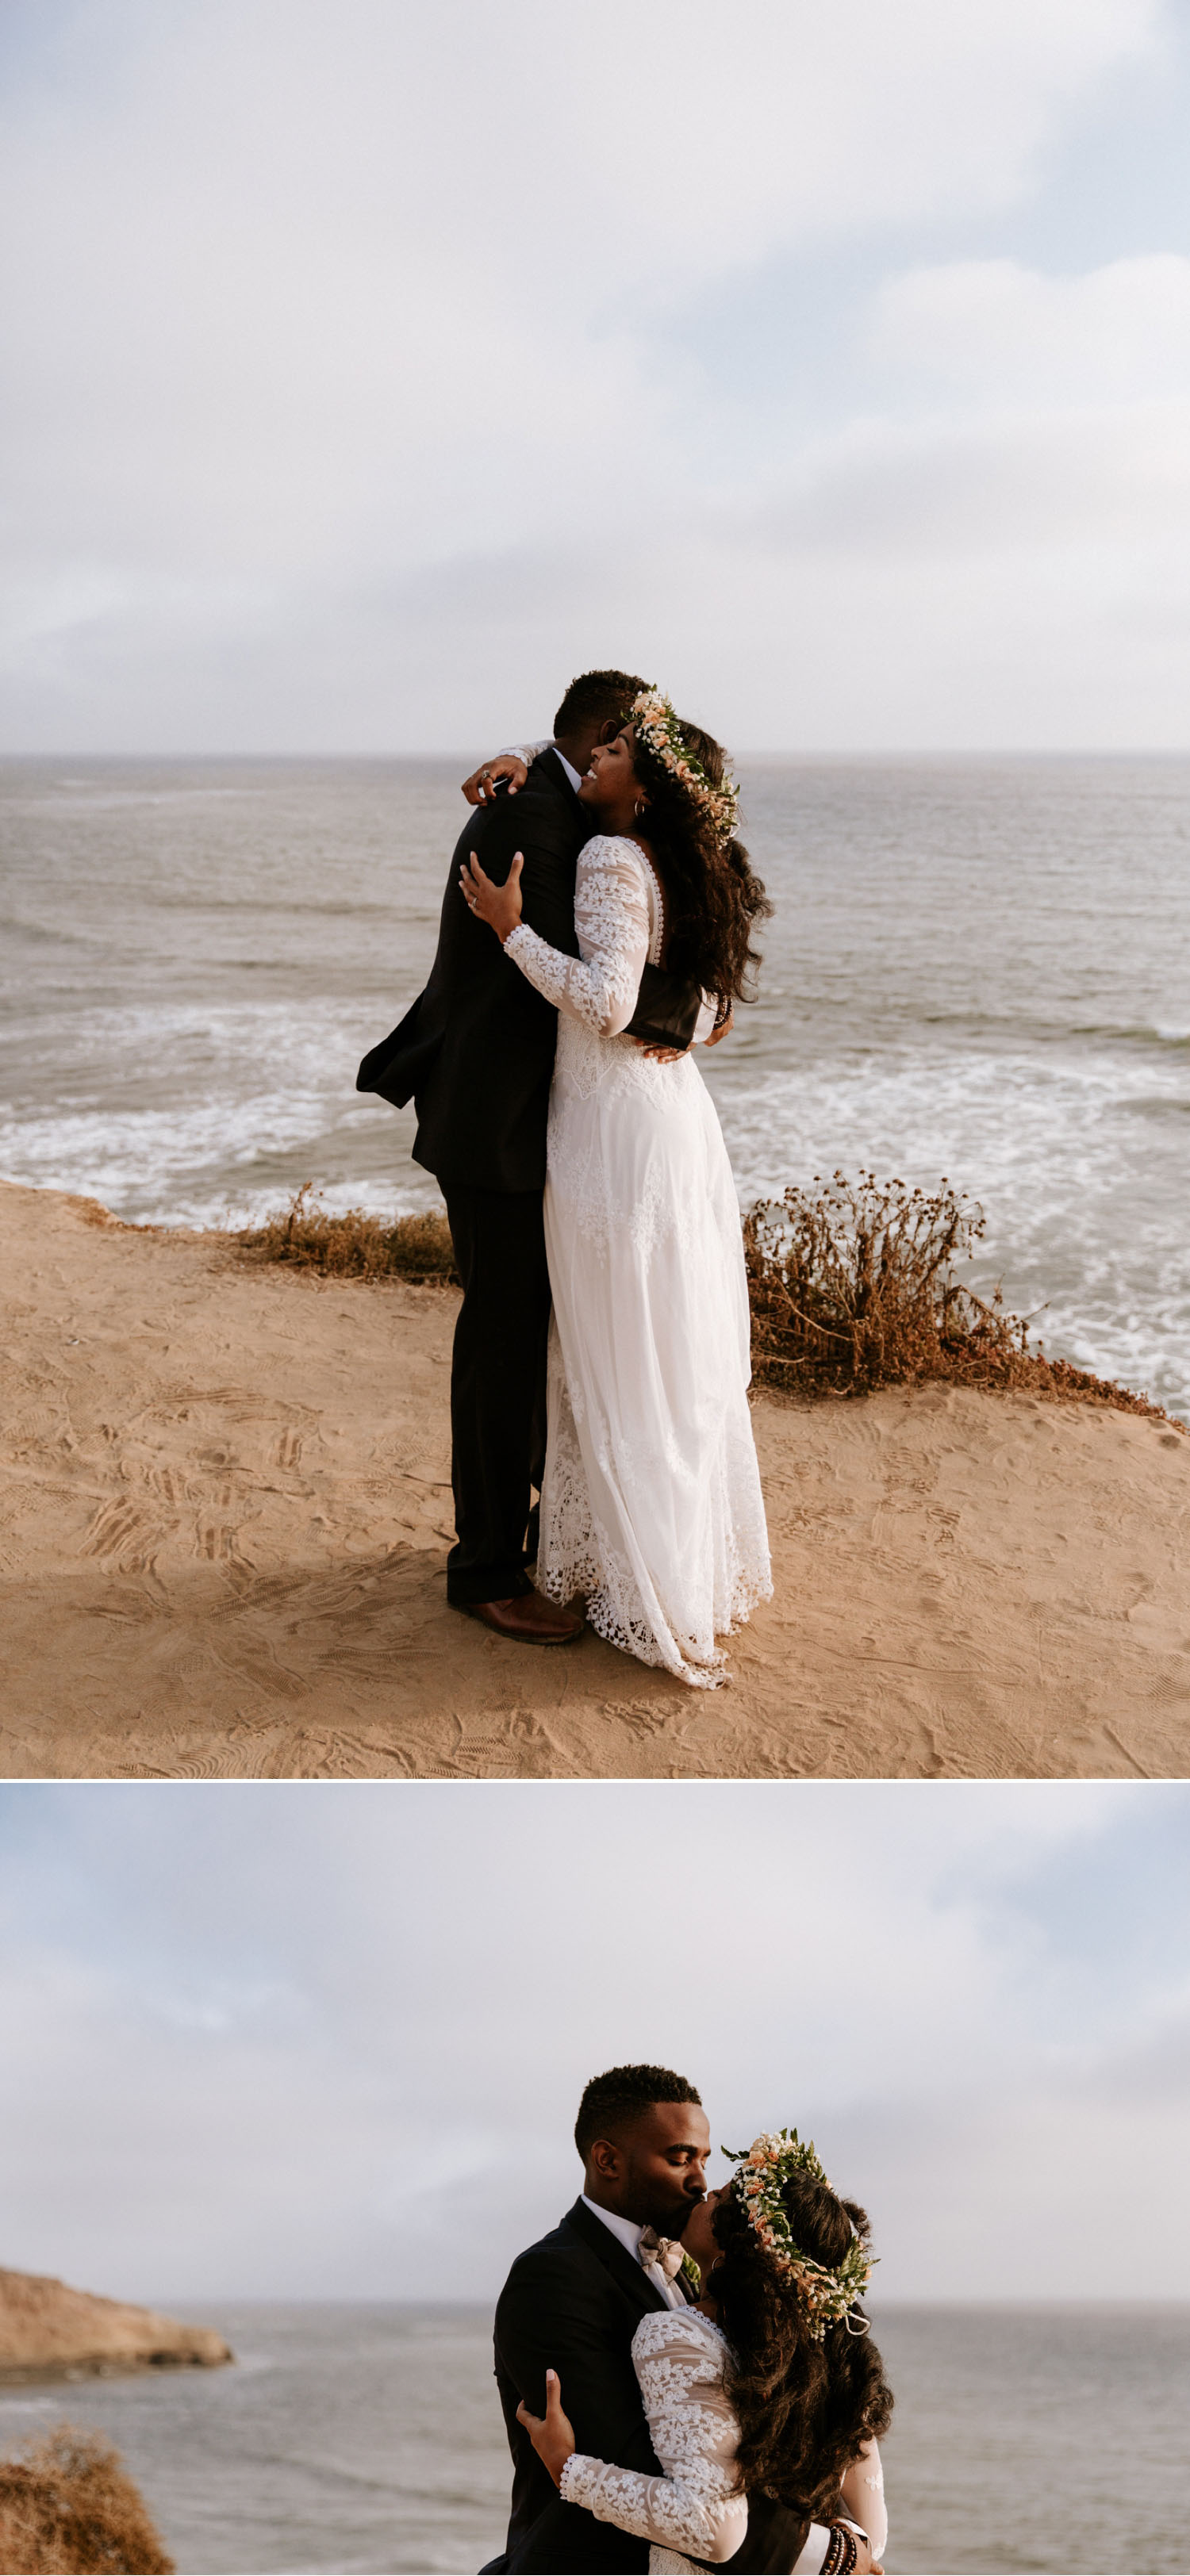 Bohemian Sunset Cliffs wedding in San Diego by Paige Nelson